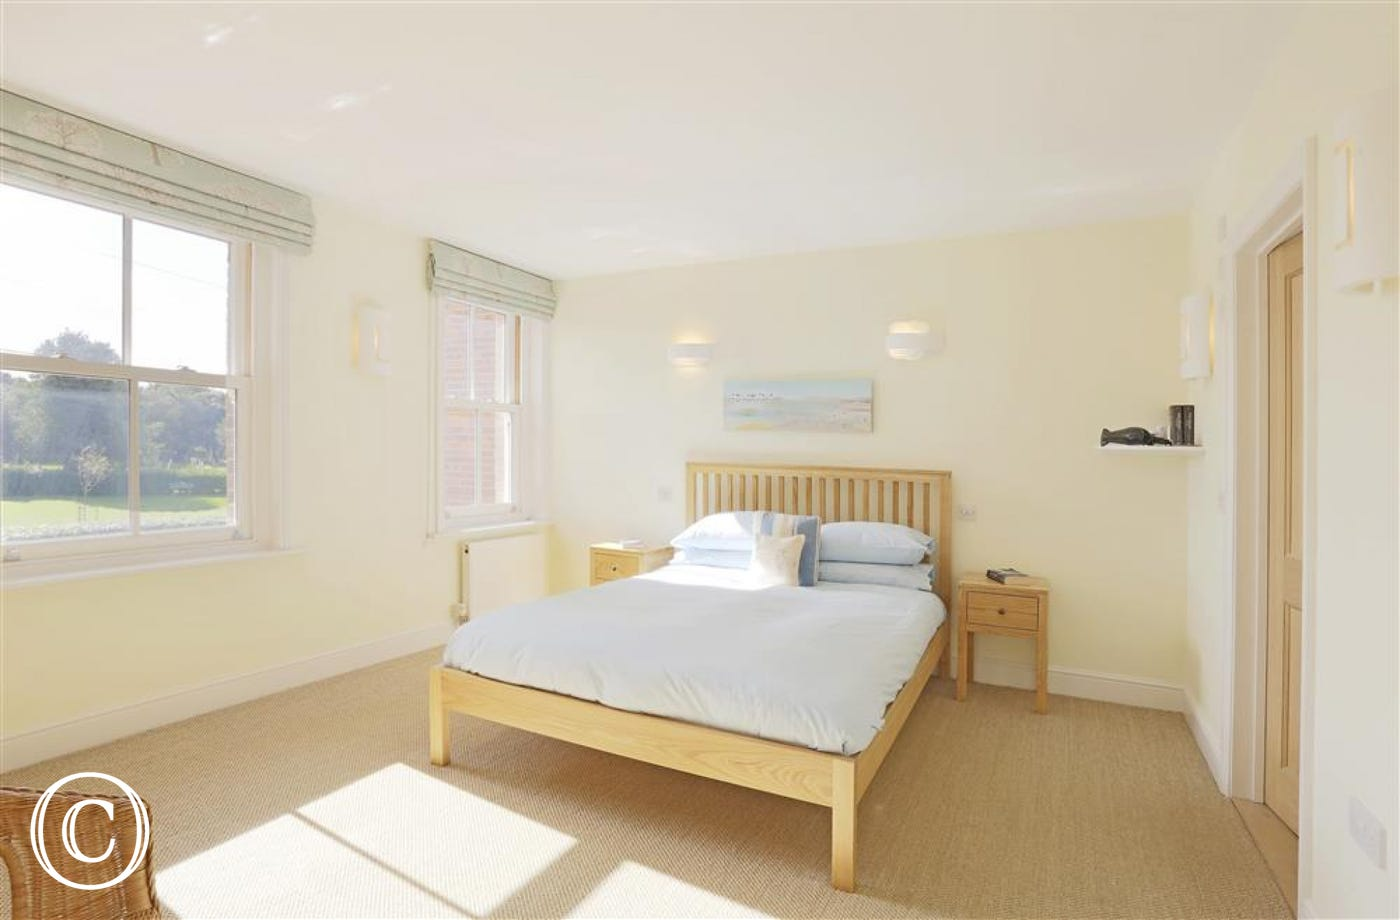 This king-sized bedded room has a nice view of the church green and the roof tops beyond with access to an en-suite.